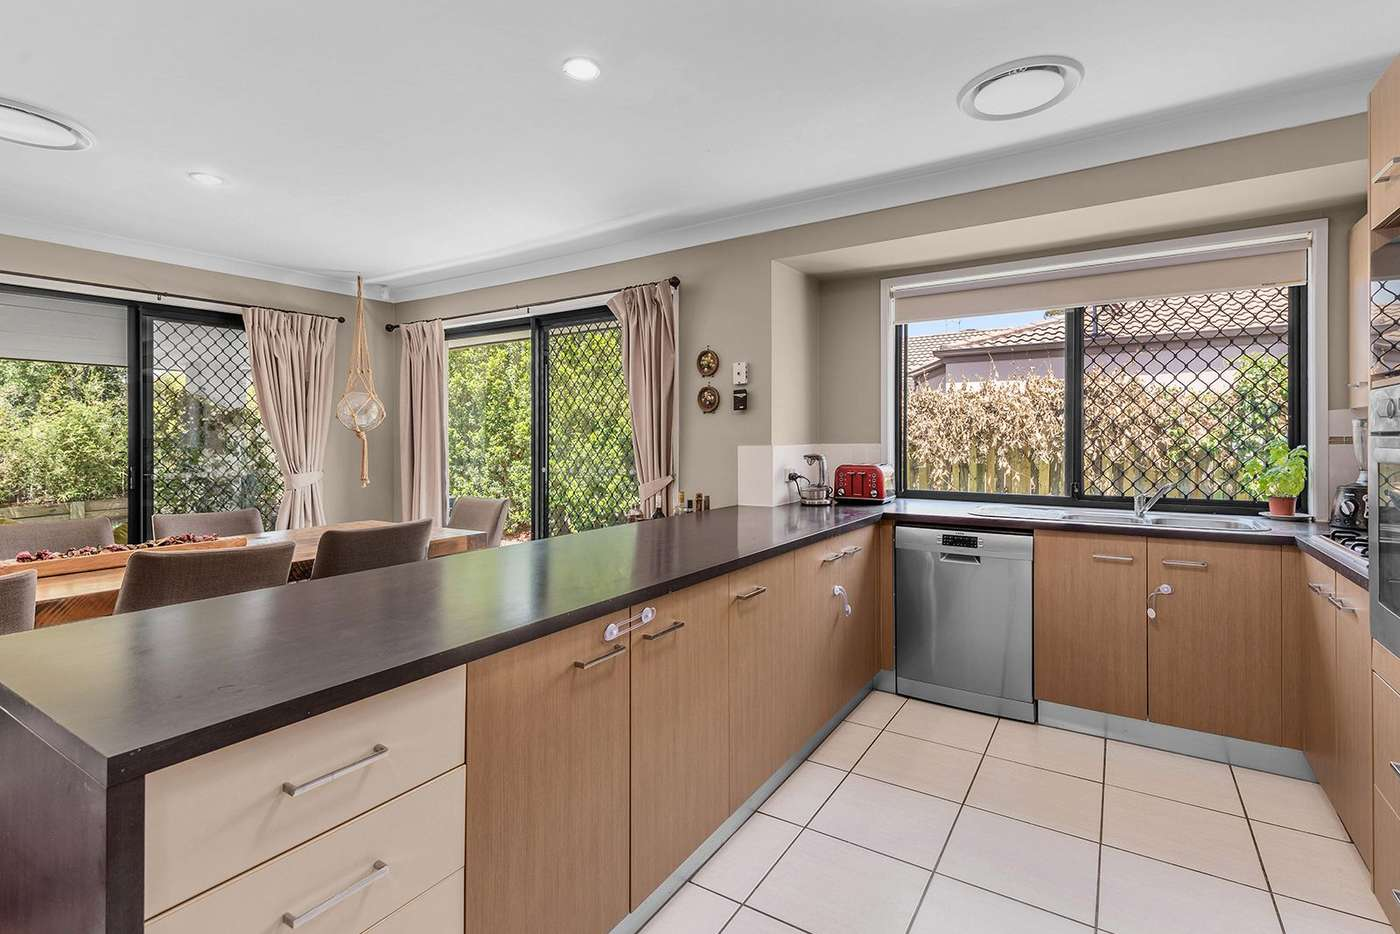 Fifth view of Homely house listing, 49 Macaranga Crescent, Carseldine QLD 4034